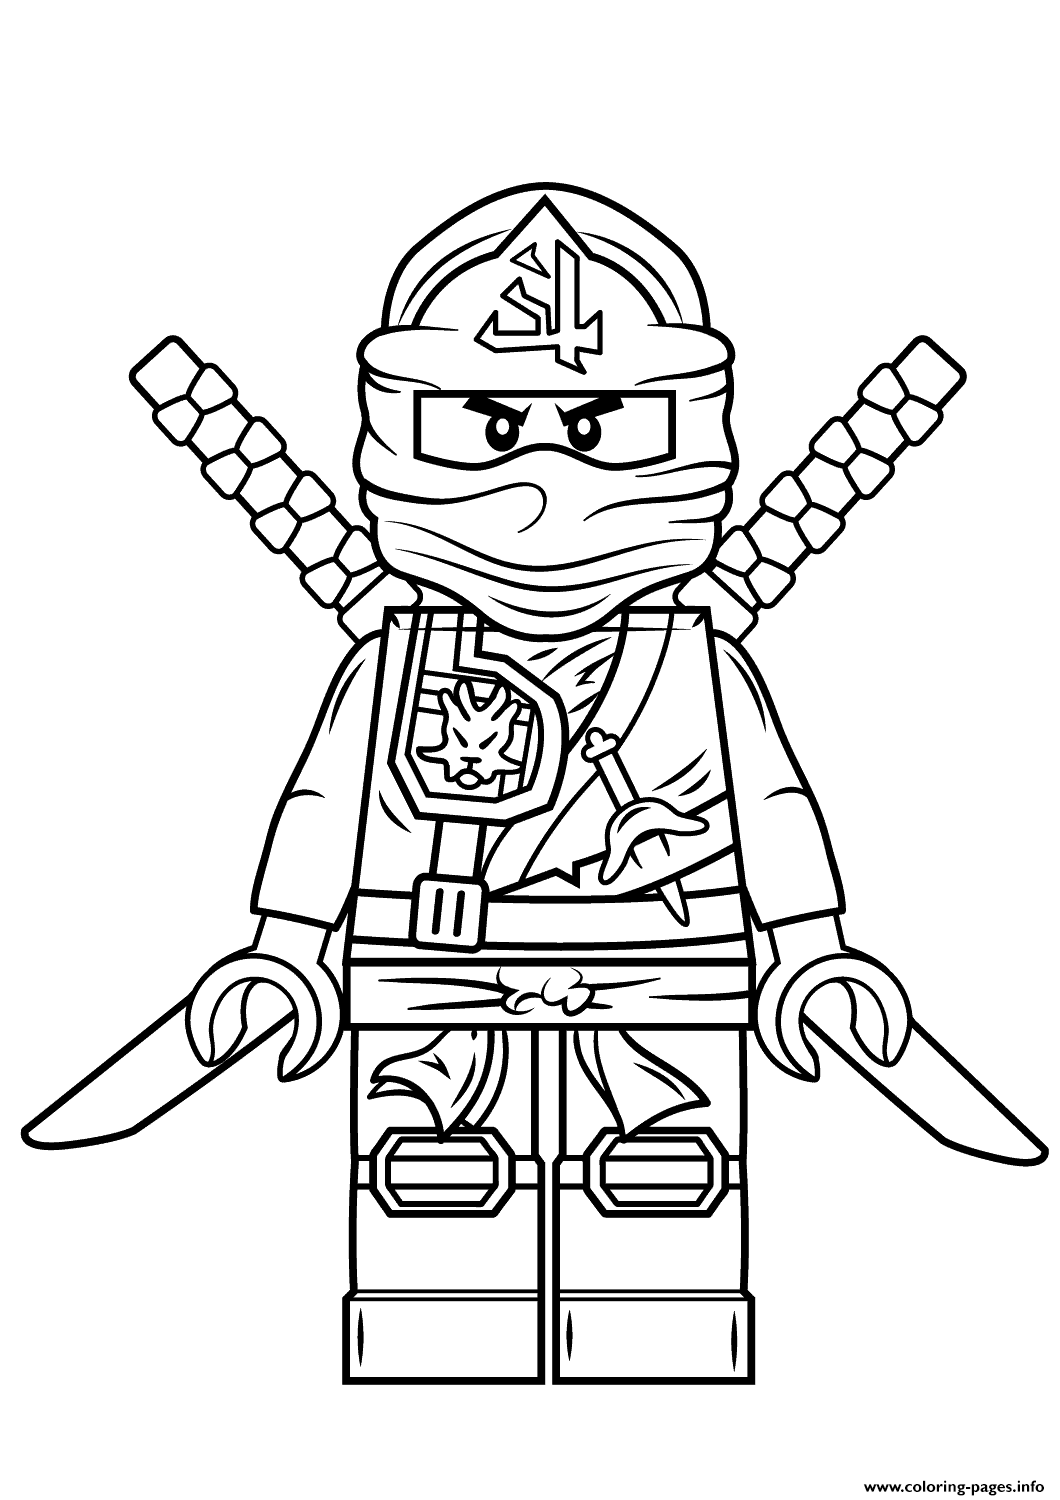 Print lego ninjago green ninja Coloring pages Free Printable